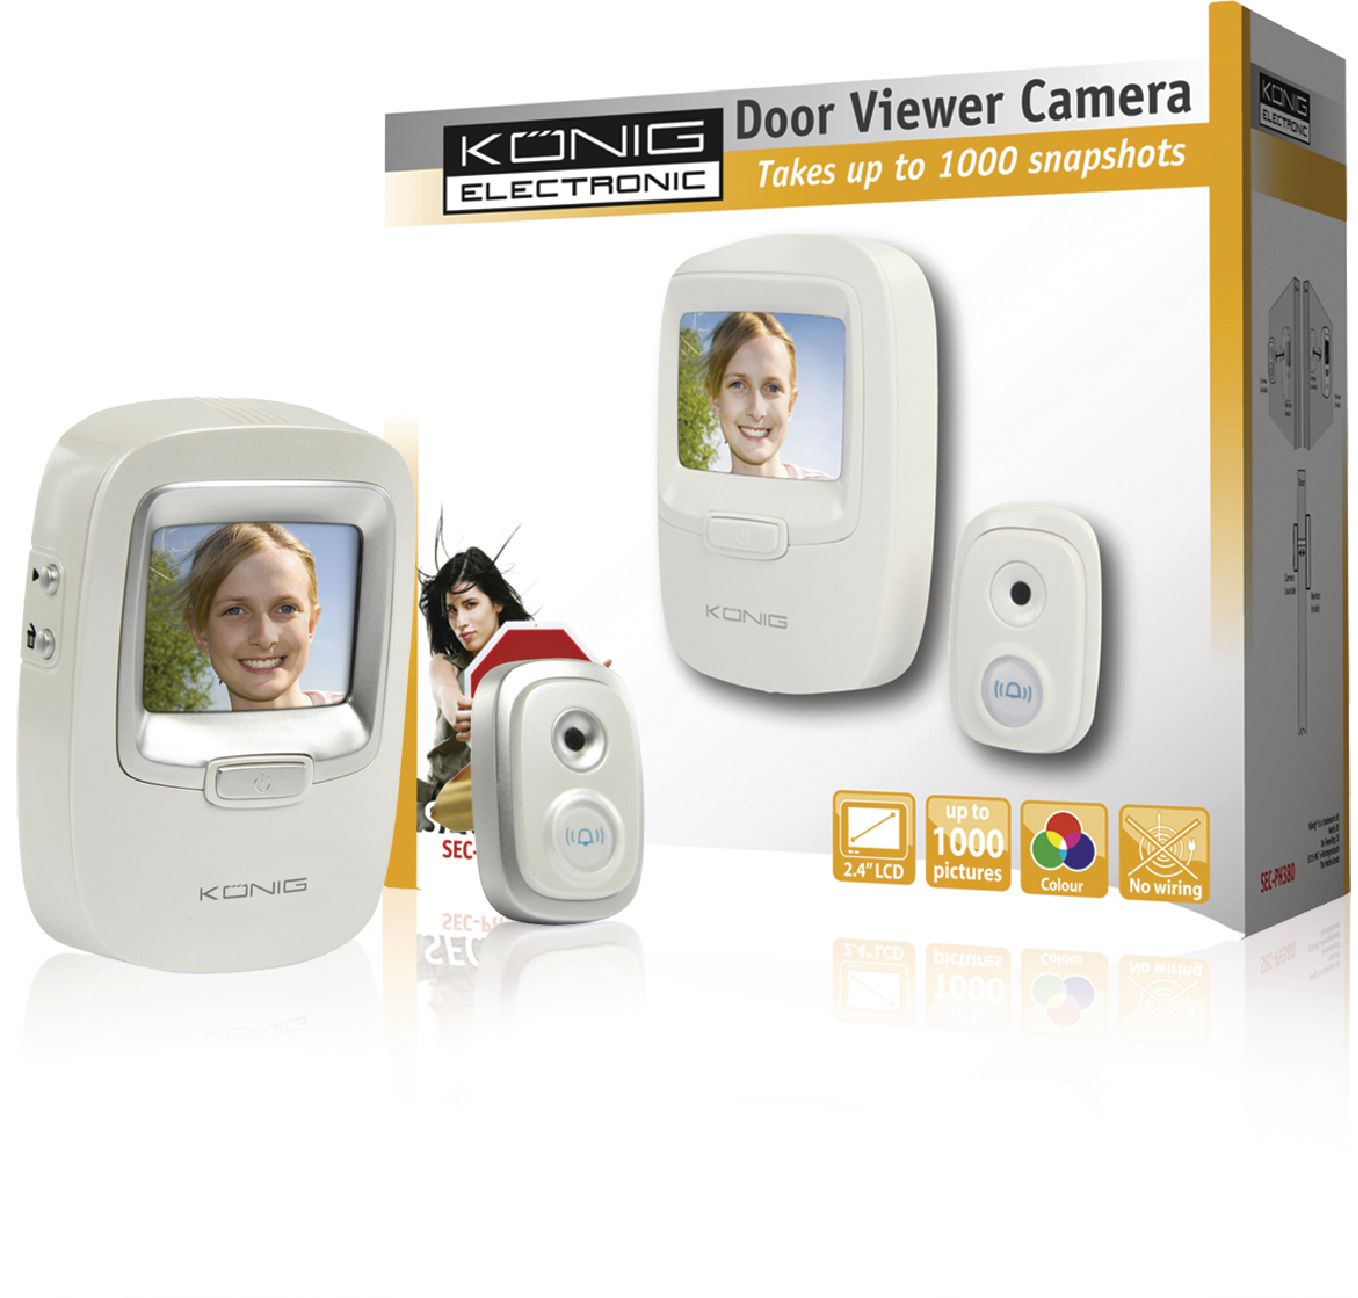 Sec ph380 k nig camera door viewer with snapshot for Door viewer camera